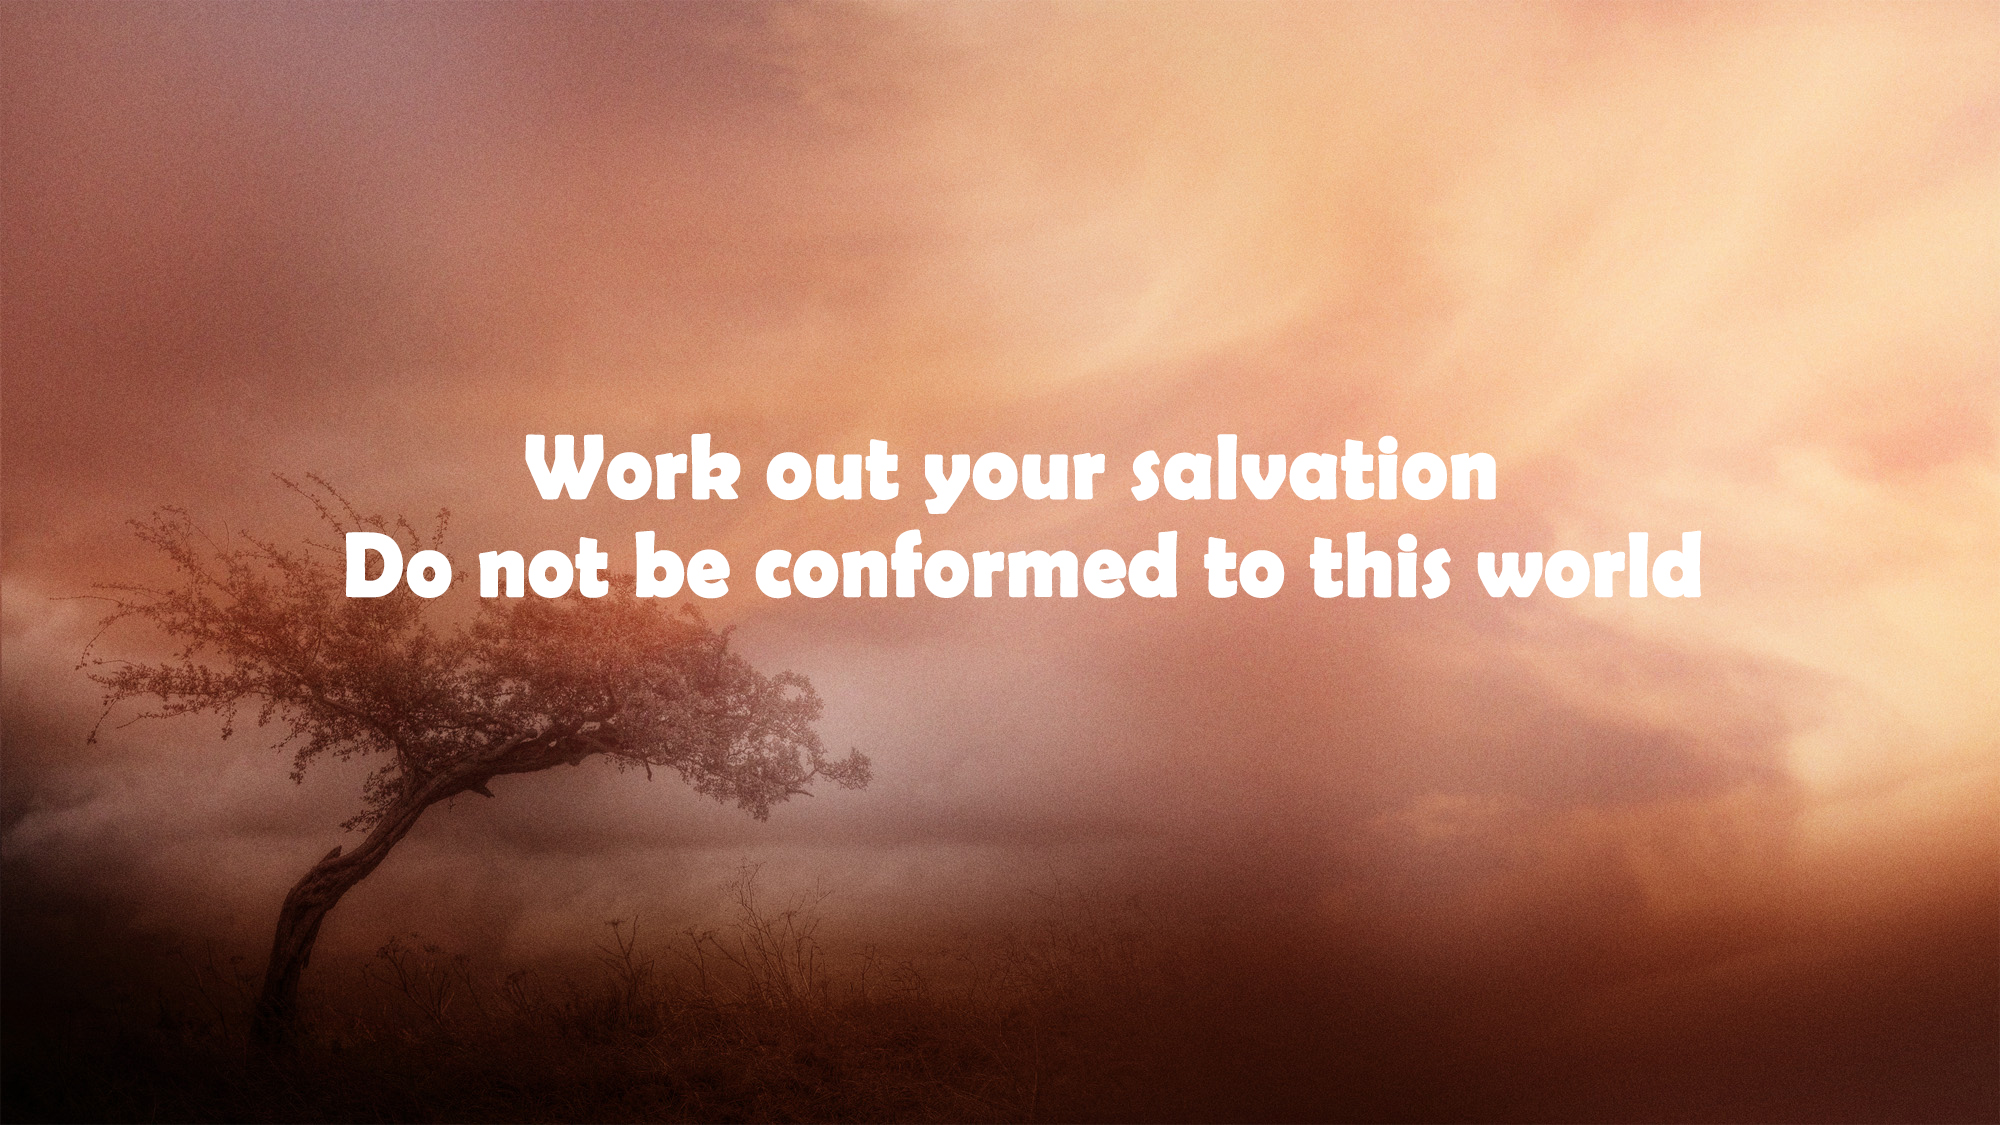 Work out your salvation-Do not be conformed to this world<br/> Jacob K Mathai